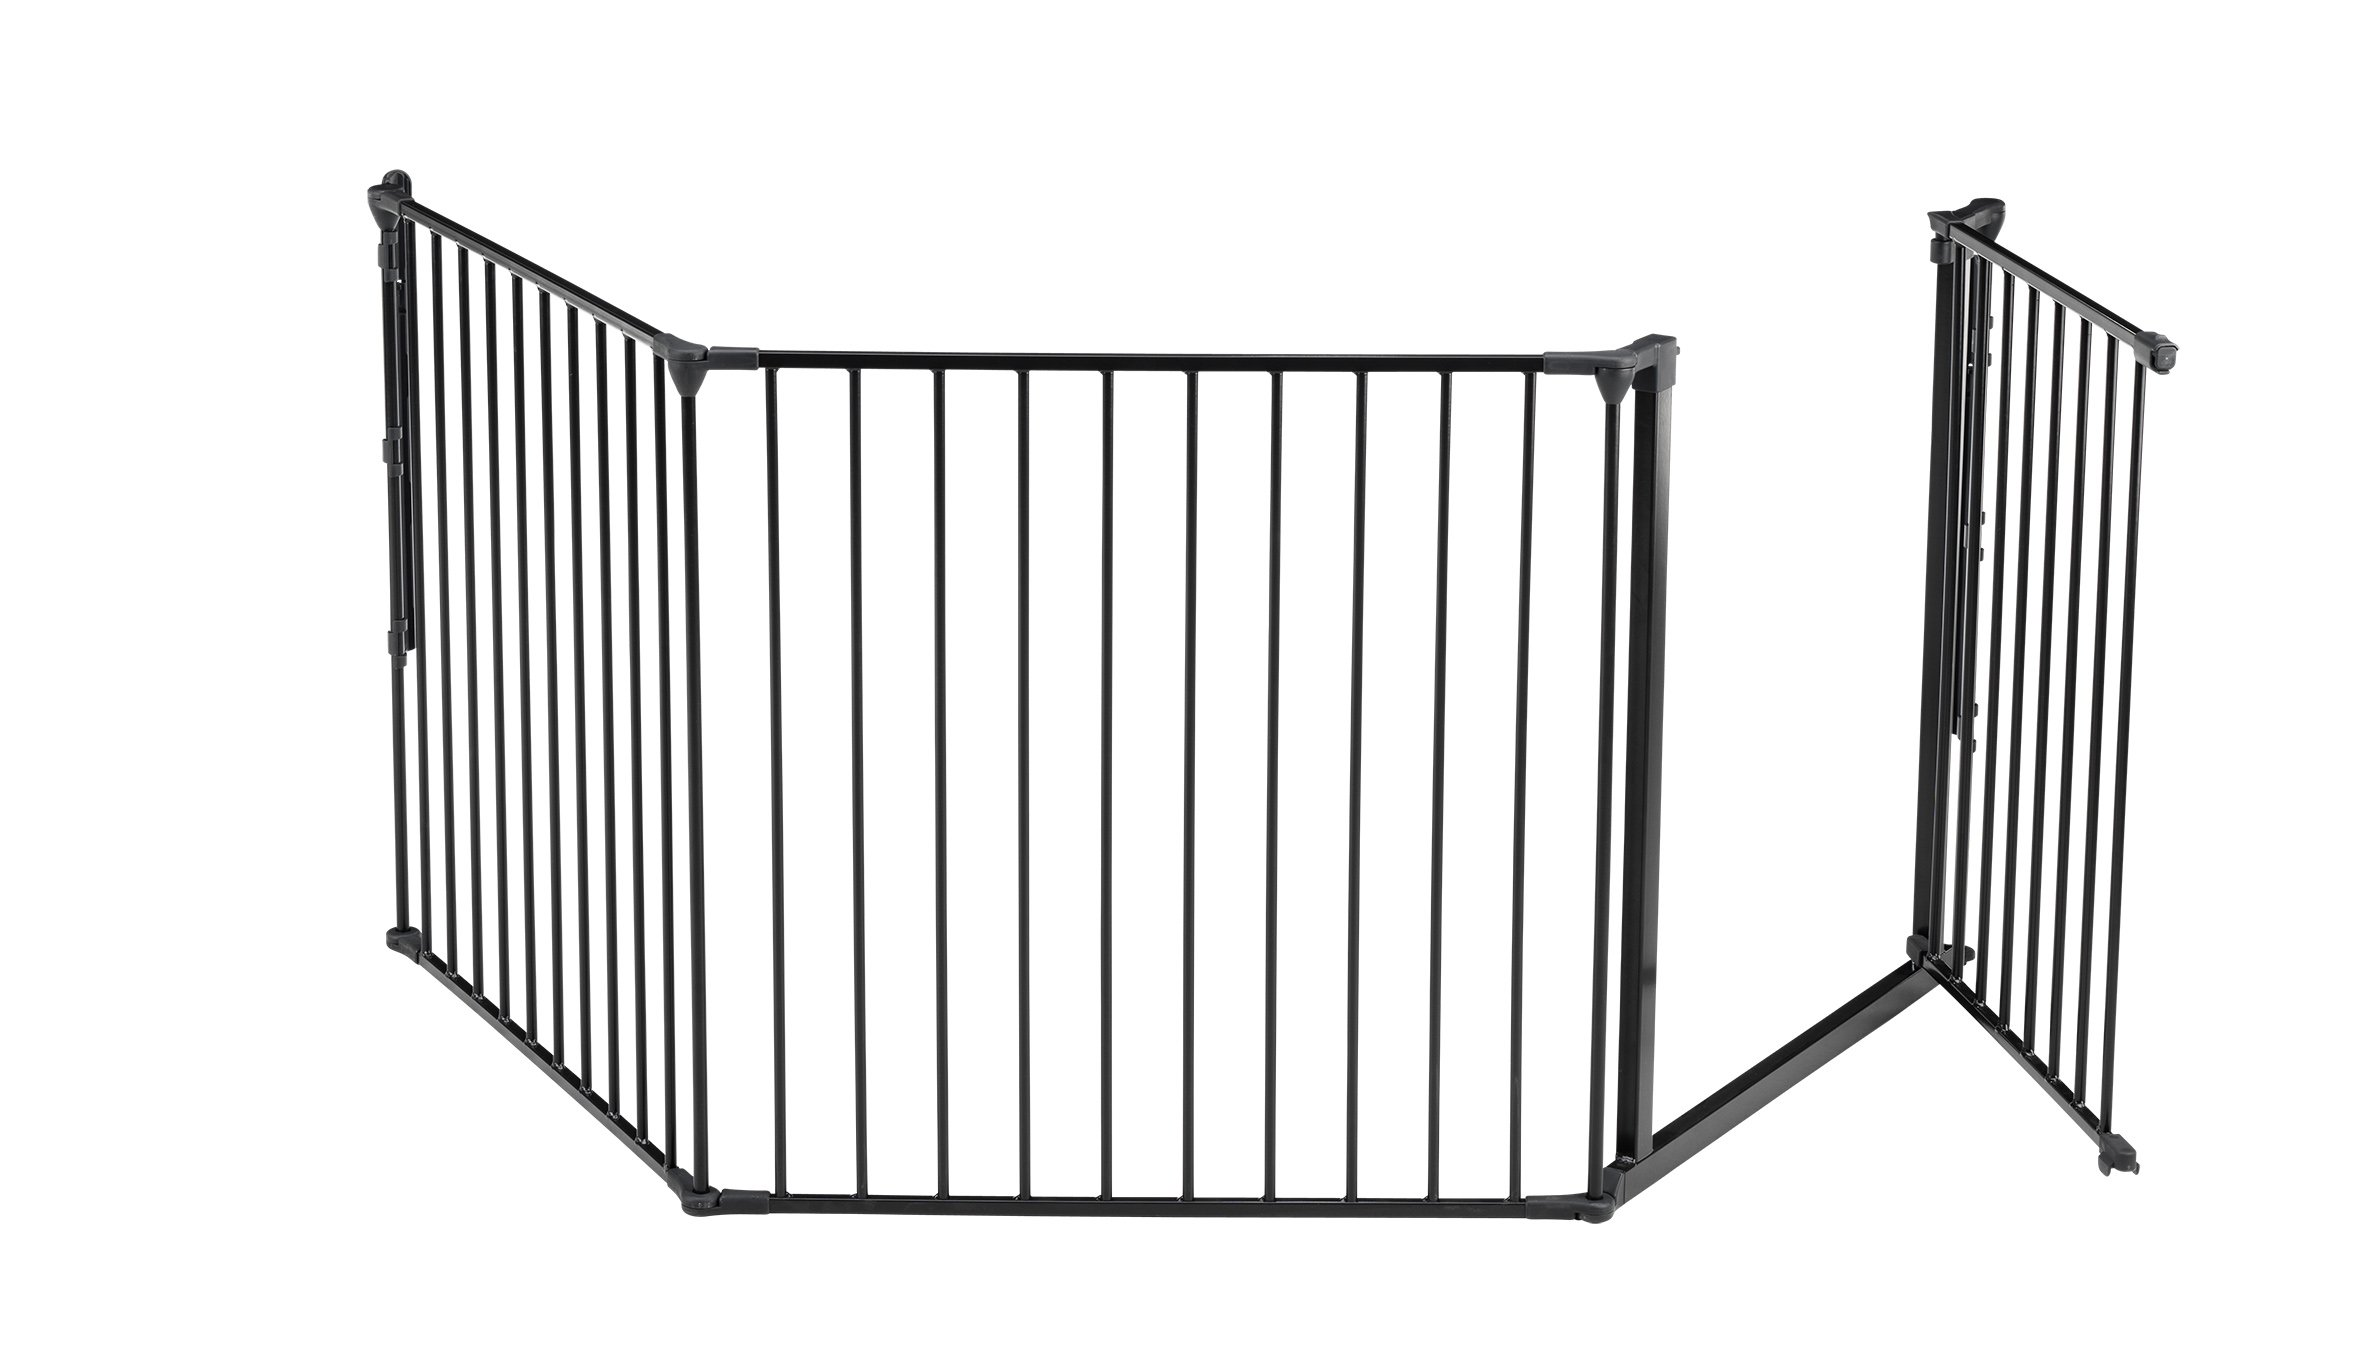 BabyDan Configure (Large 90-223cm, Anthracite) BabyDan Only configure system fulfilling newest european safety standard Multi purpose room divider and gate for wider openings Flexible and easy to fit 4